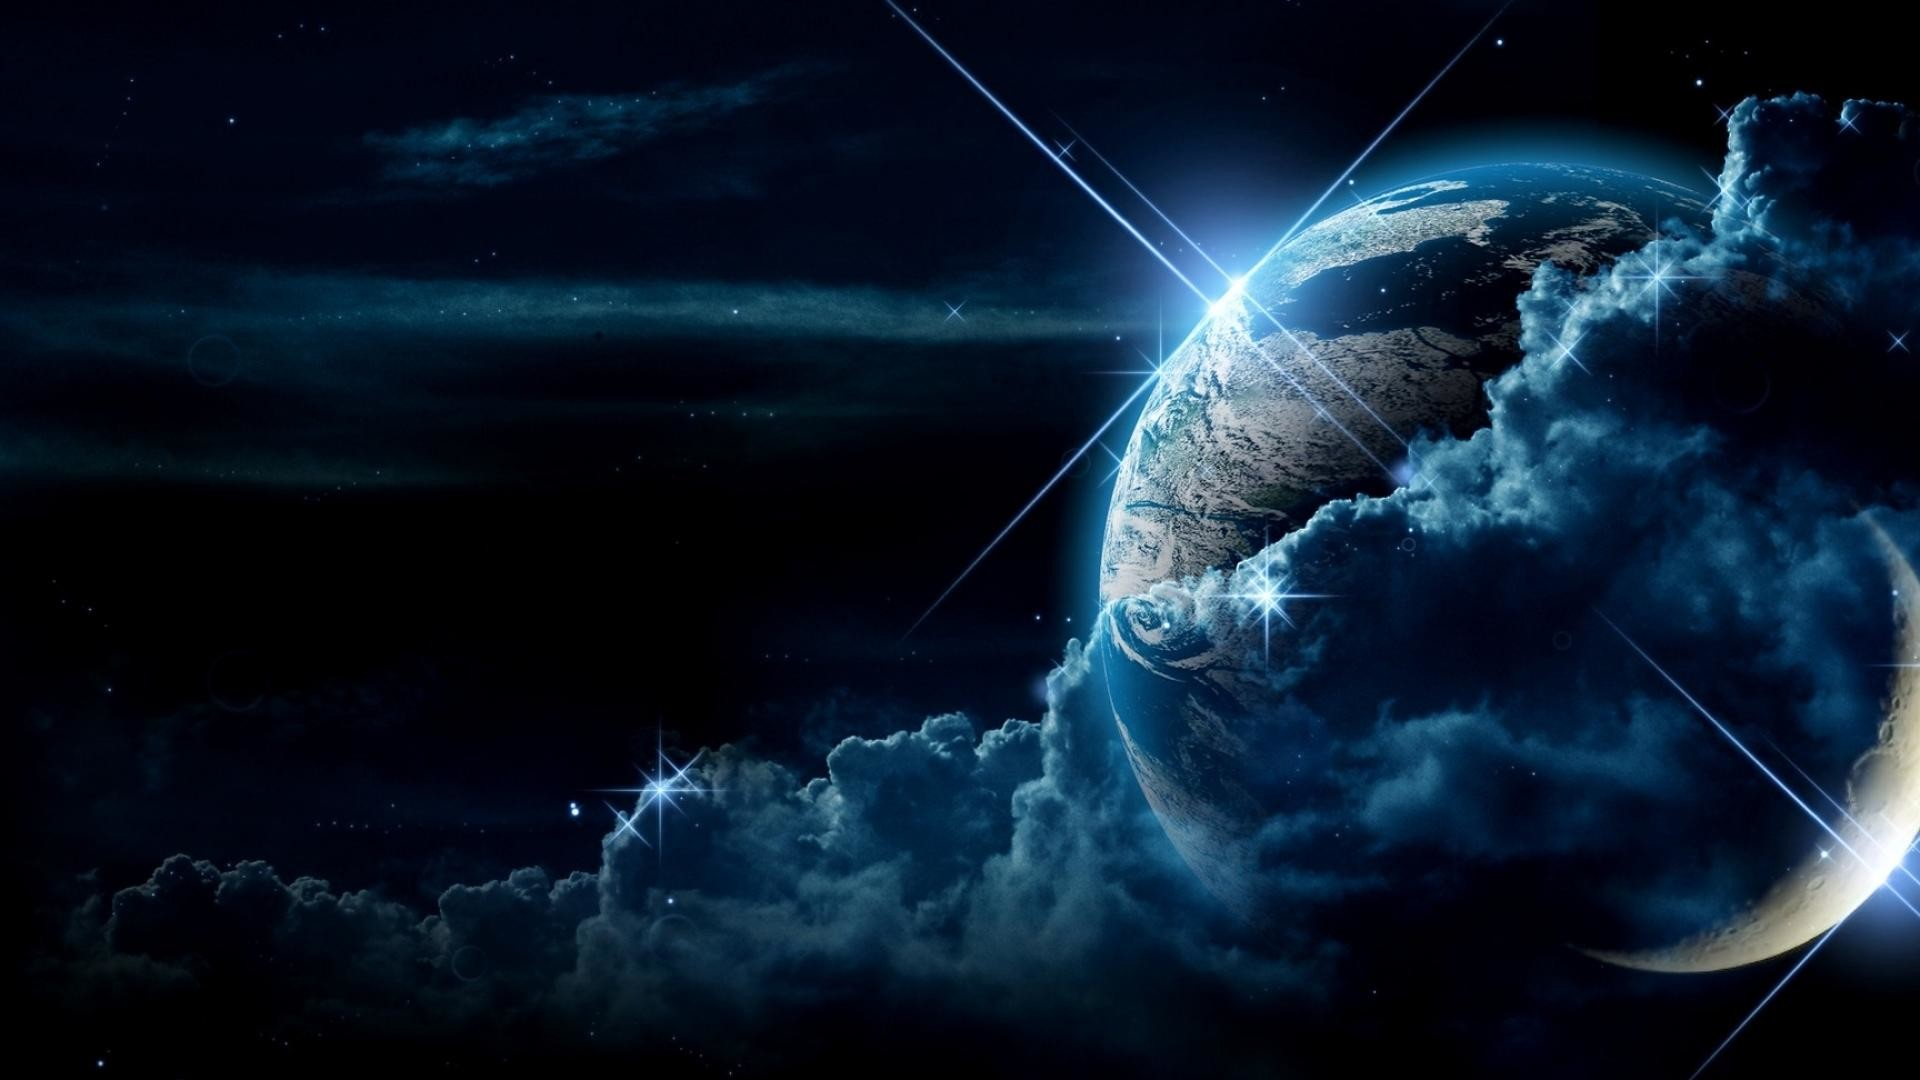 Earth From Space HD Wallpaper – Pics about space